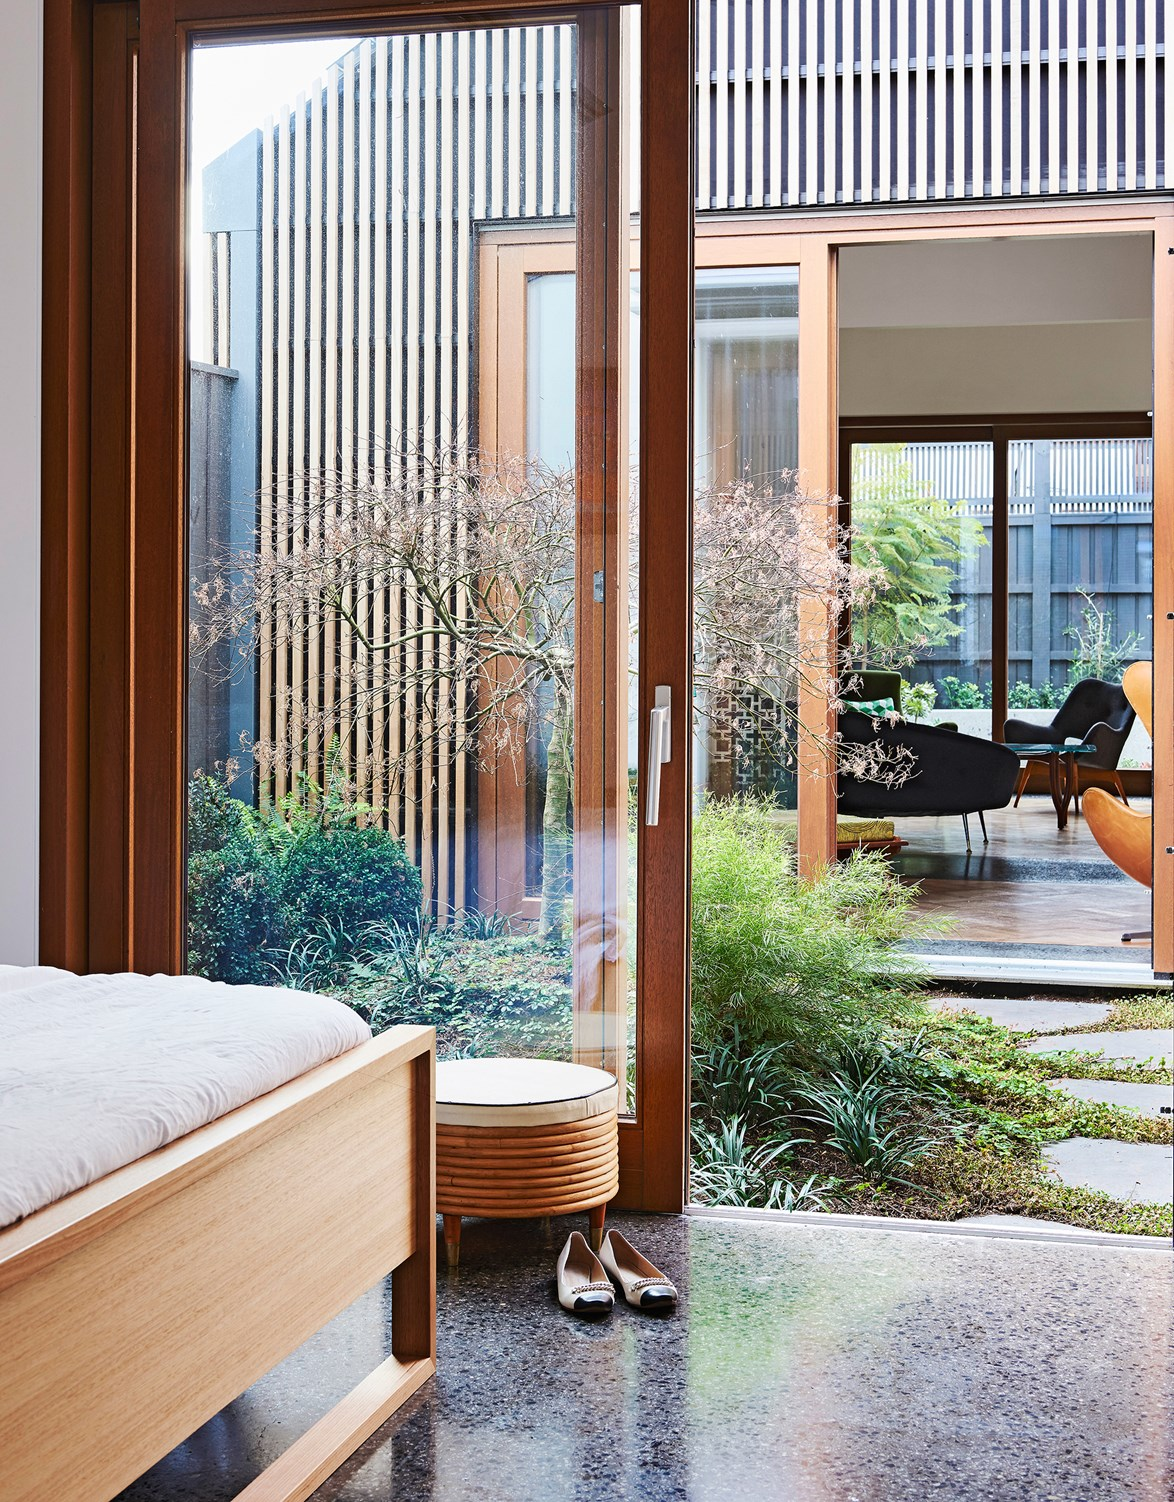 """When a pair of [mid-century modern design enthusiasts built their home](https://www.homestolove.com.au/melbourne-house-by-steffen-welsch-architects-4783